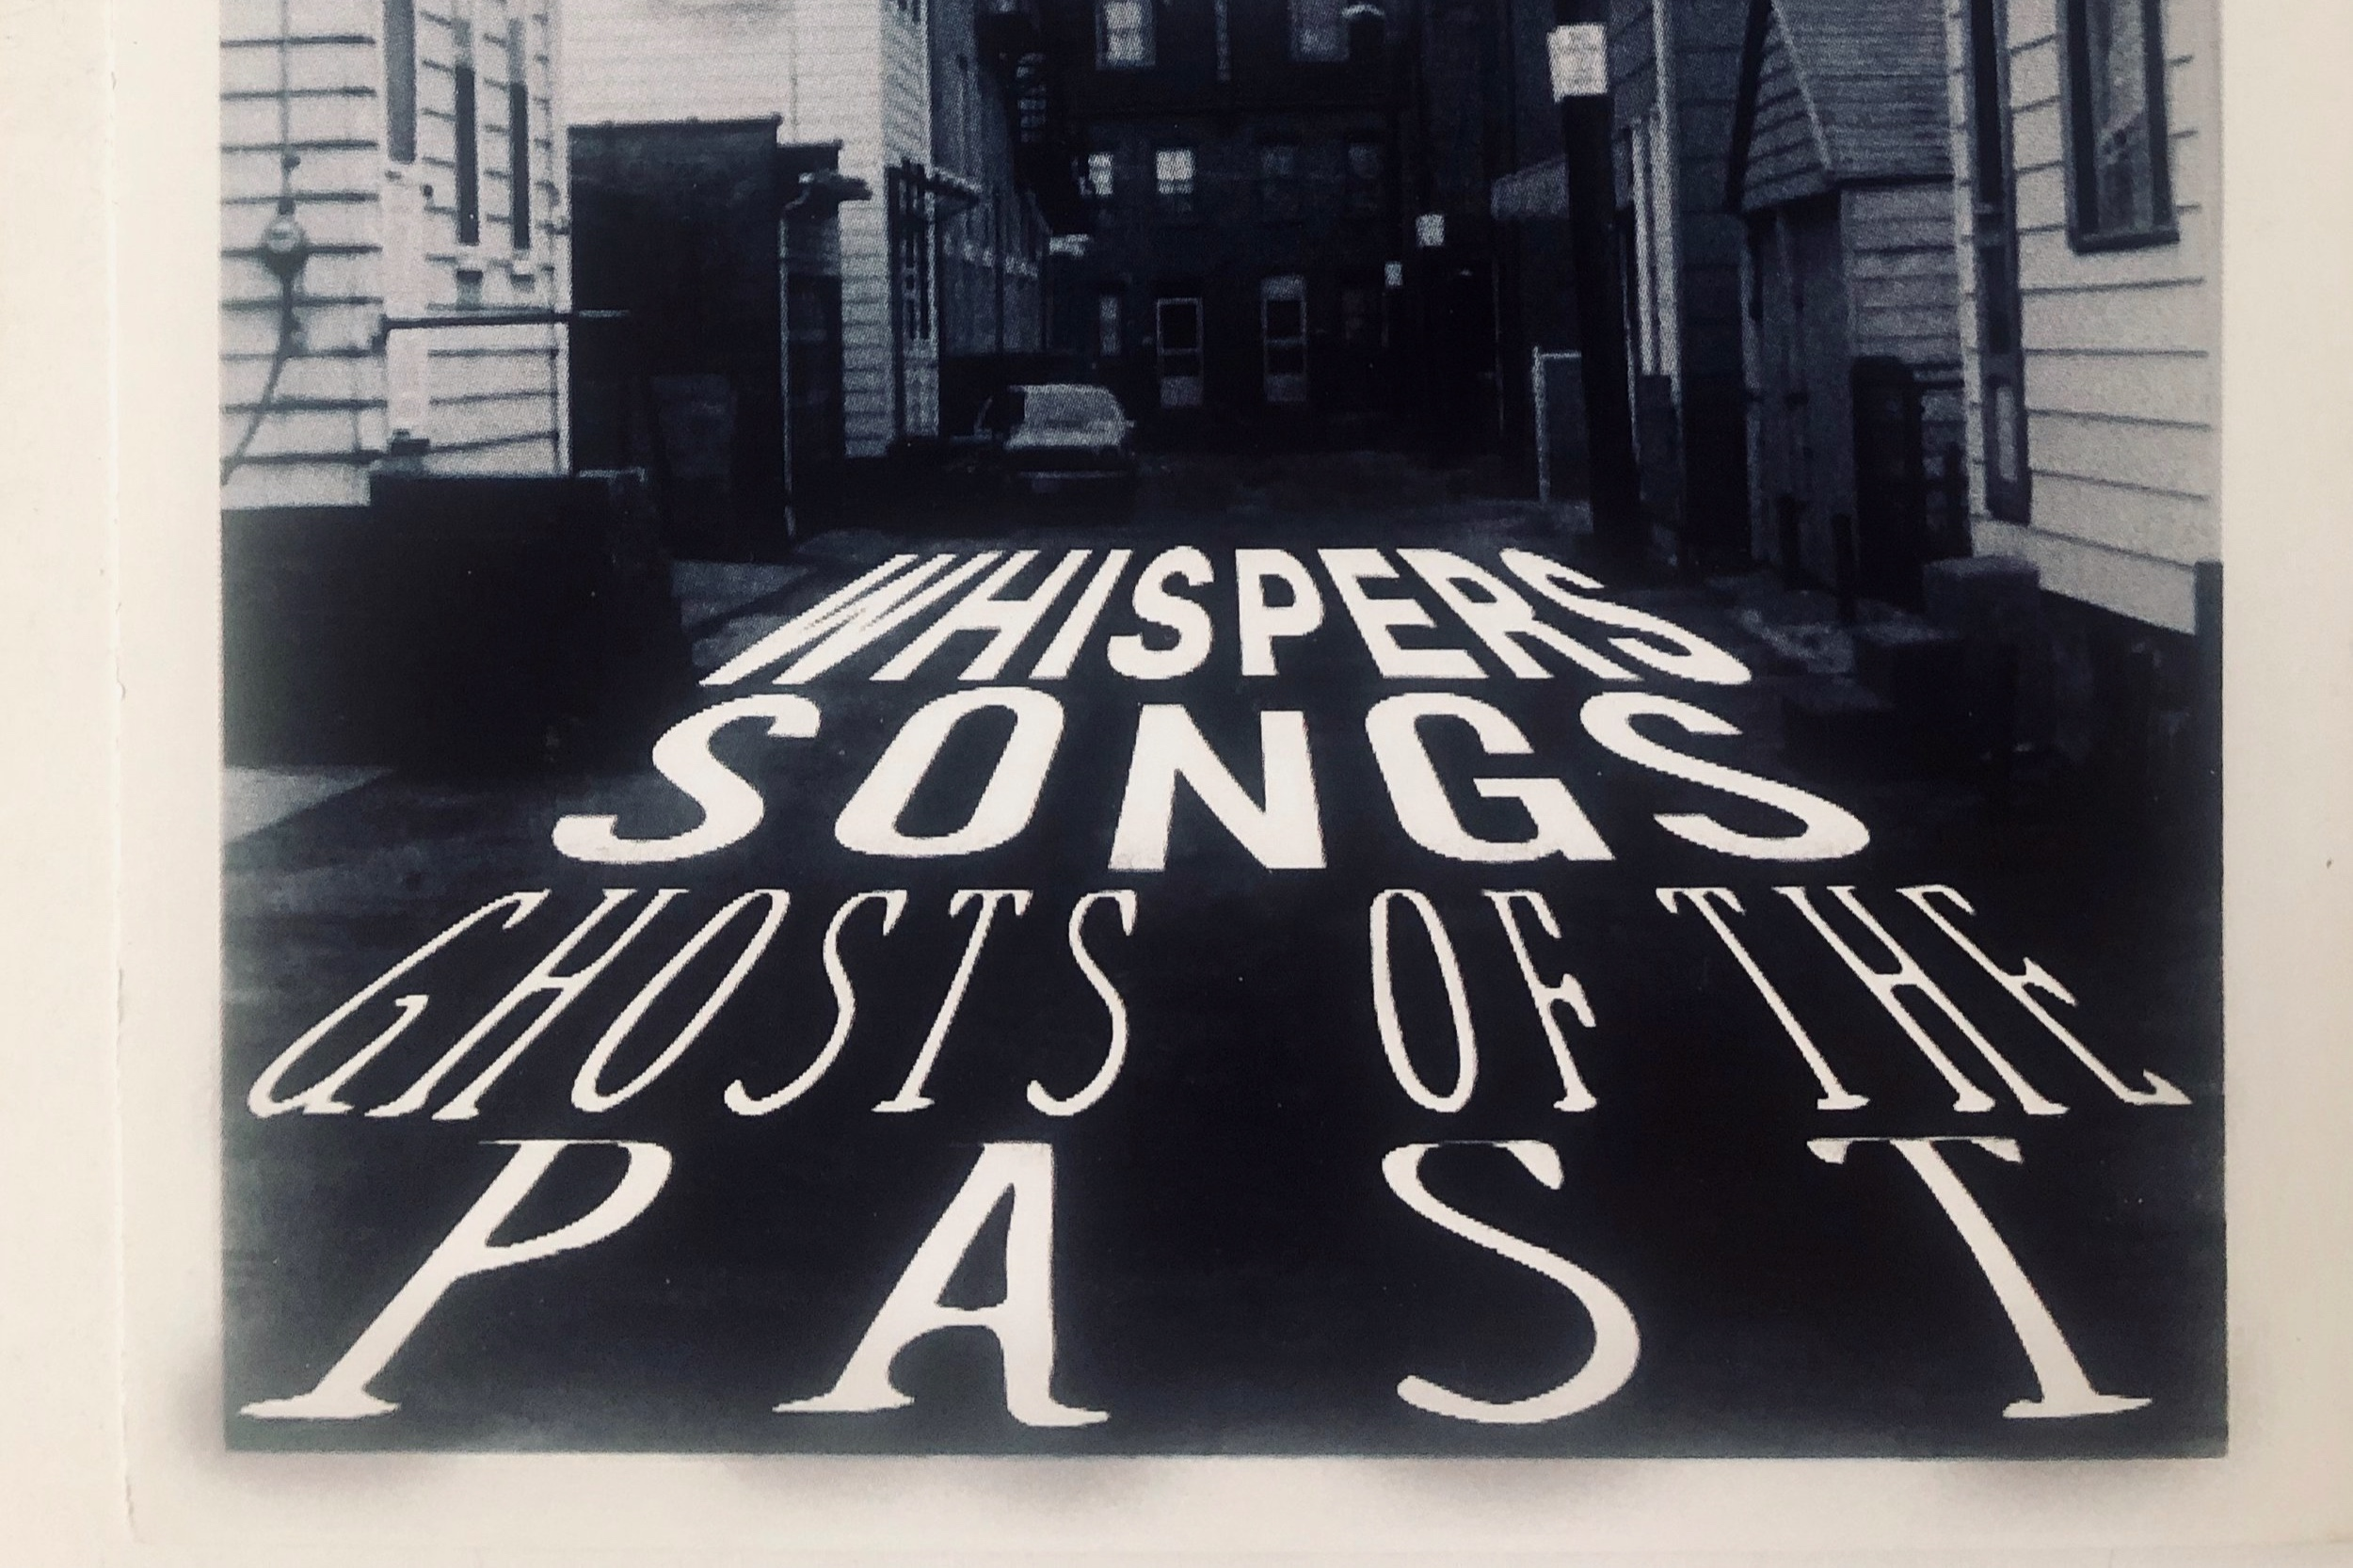 Whispers, Songs, Ghosts of the Past - 2005